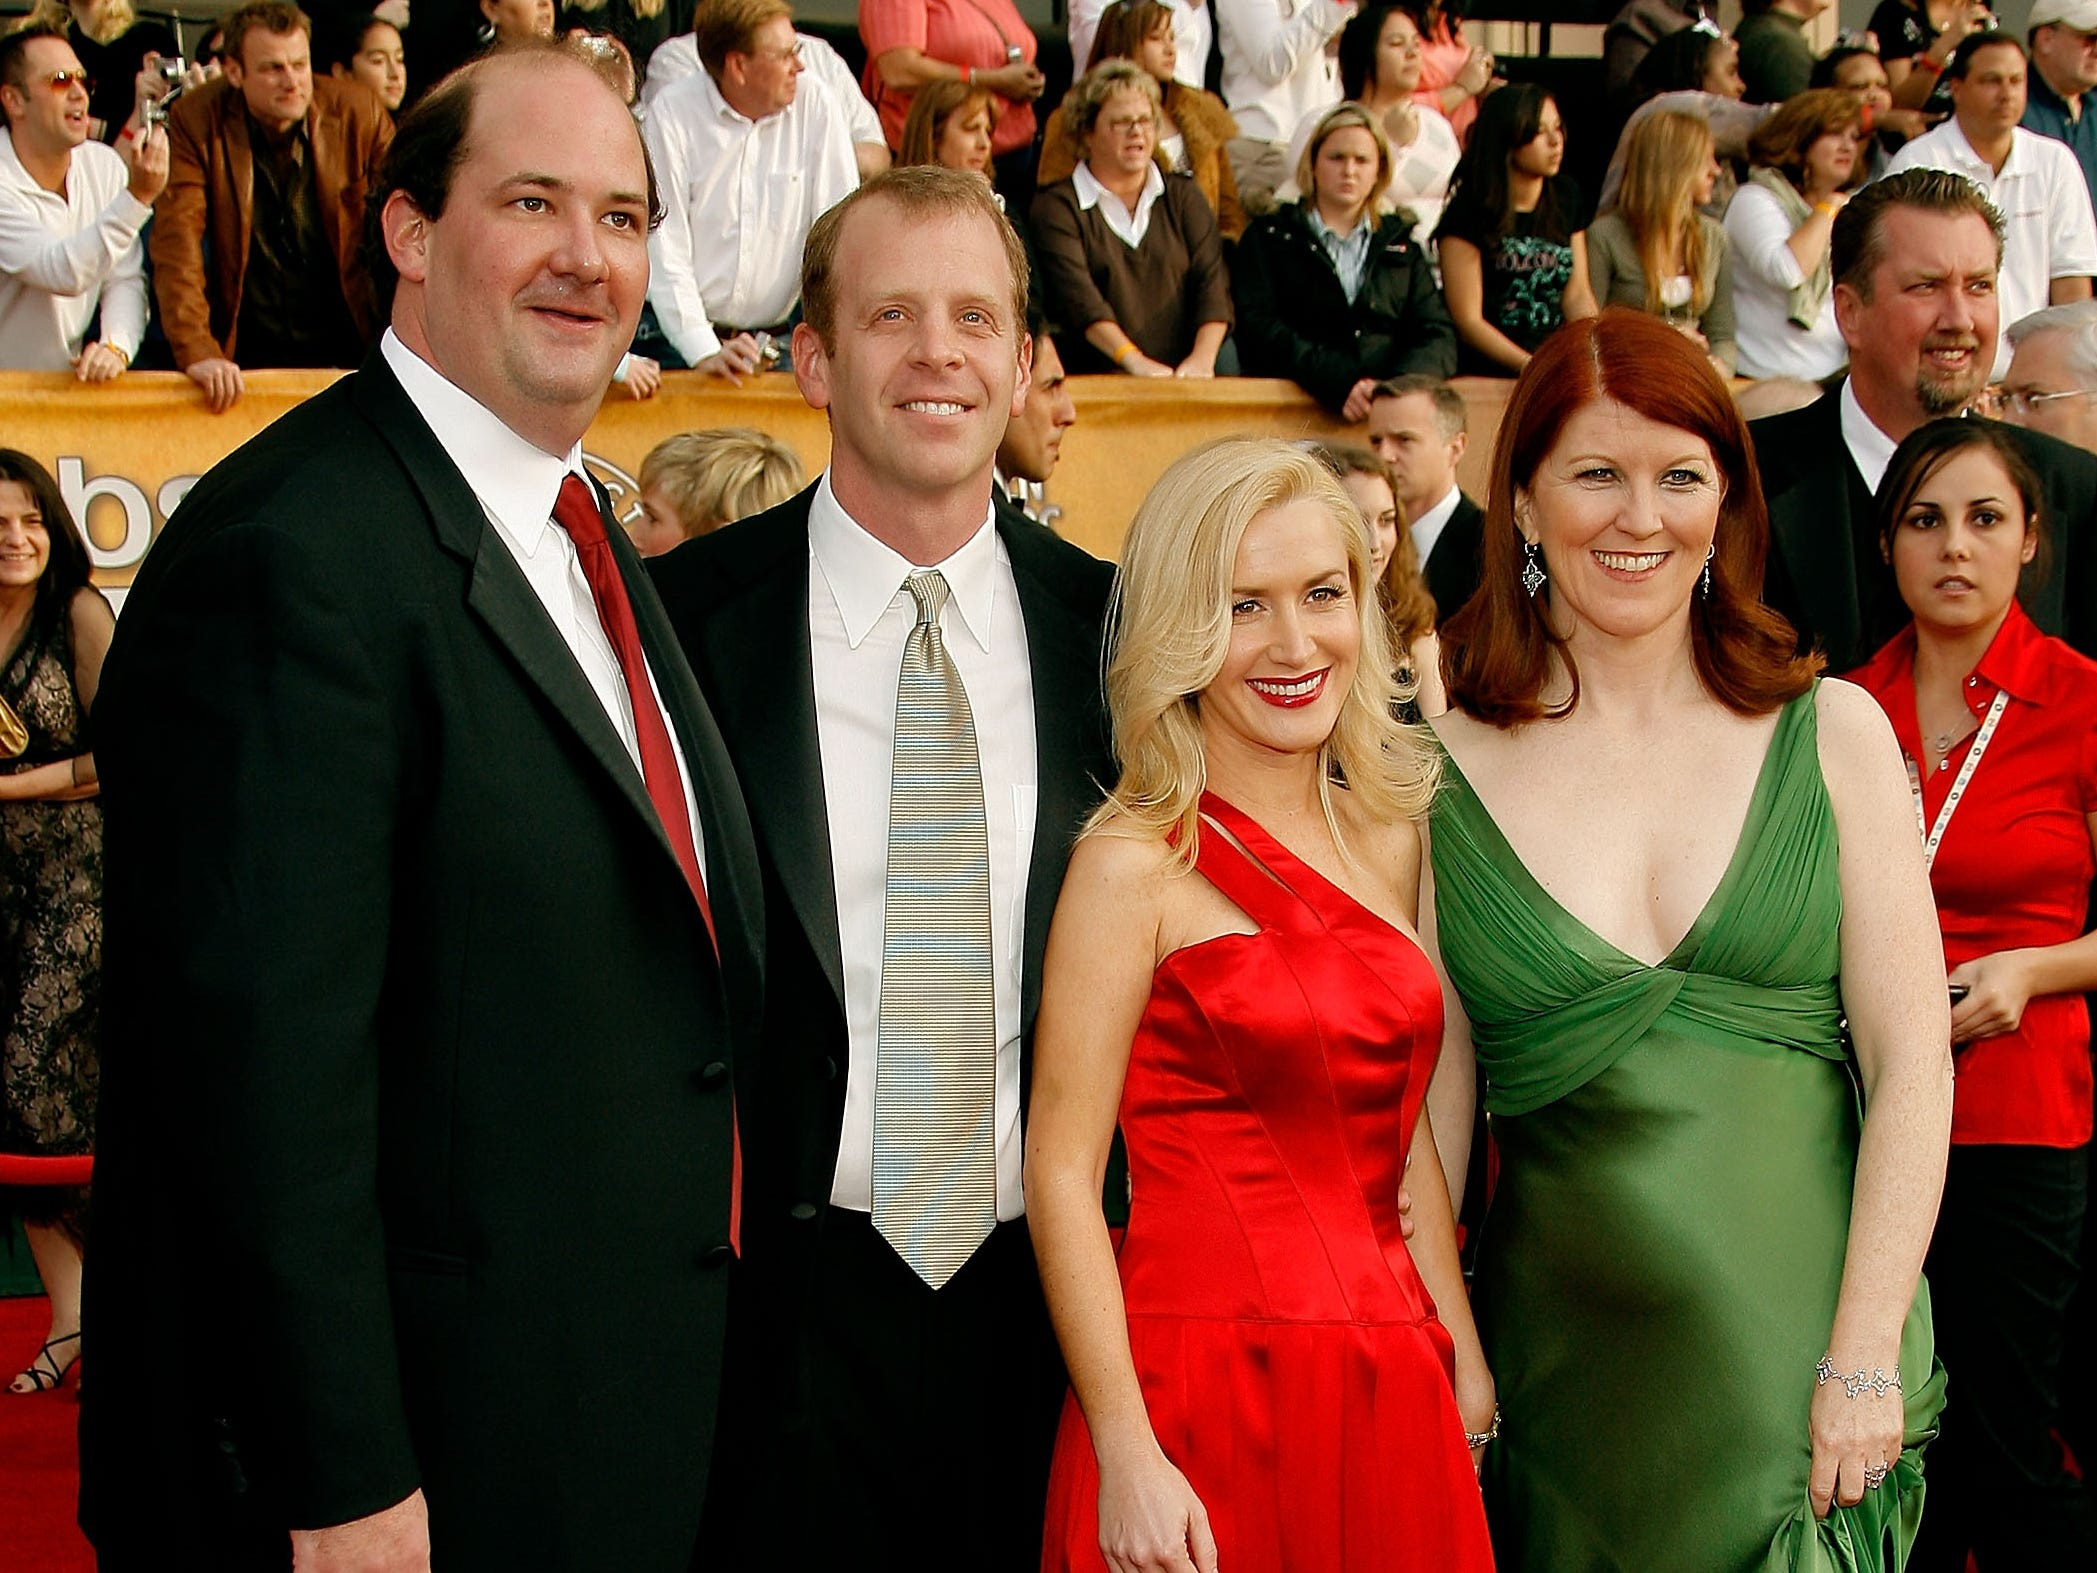 """""""The Office"""" castmembers, from left, Brian Baumgartner (Kevin), Paul Lieberstein (Paul), Angela Kinsey (Angela), and Kate Flannery (Meredith) arrive at the 13th Annual Screen Actors Guild Awards held at the Shrine Auditorium on January 28, 2007 in Los Angeles, California."""